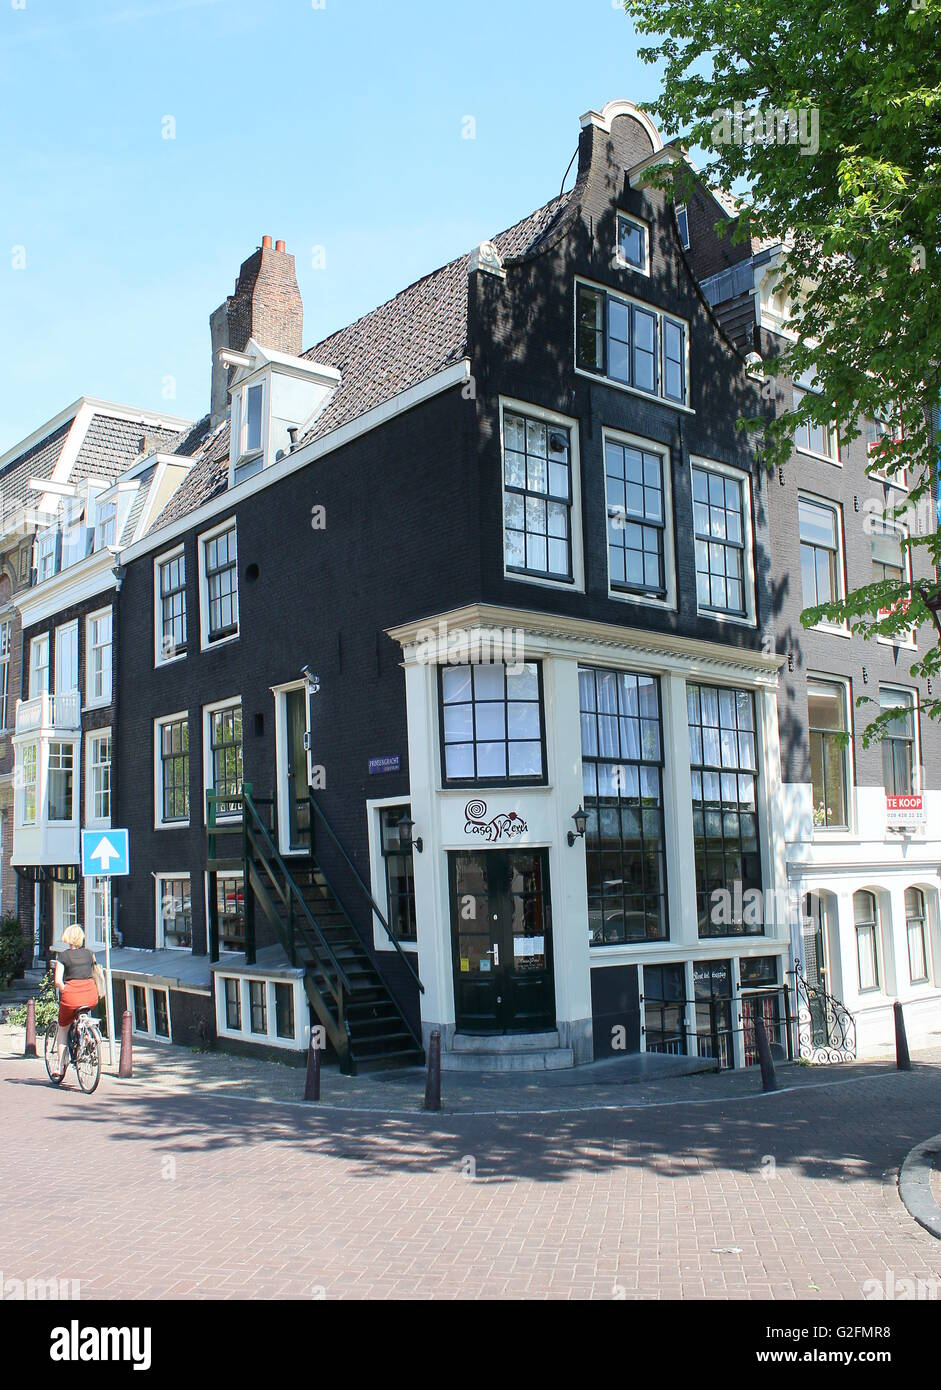 Old  17th century gabled house -  Restaurant Casa Perú  - corner of Prinsengracht & Leidsegracht canal, - Stock Image